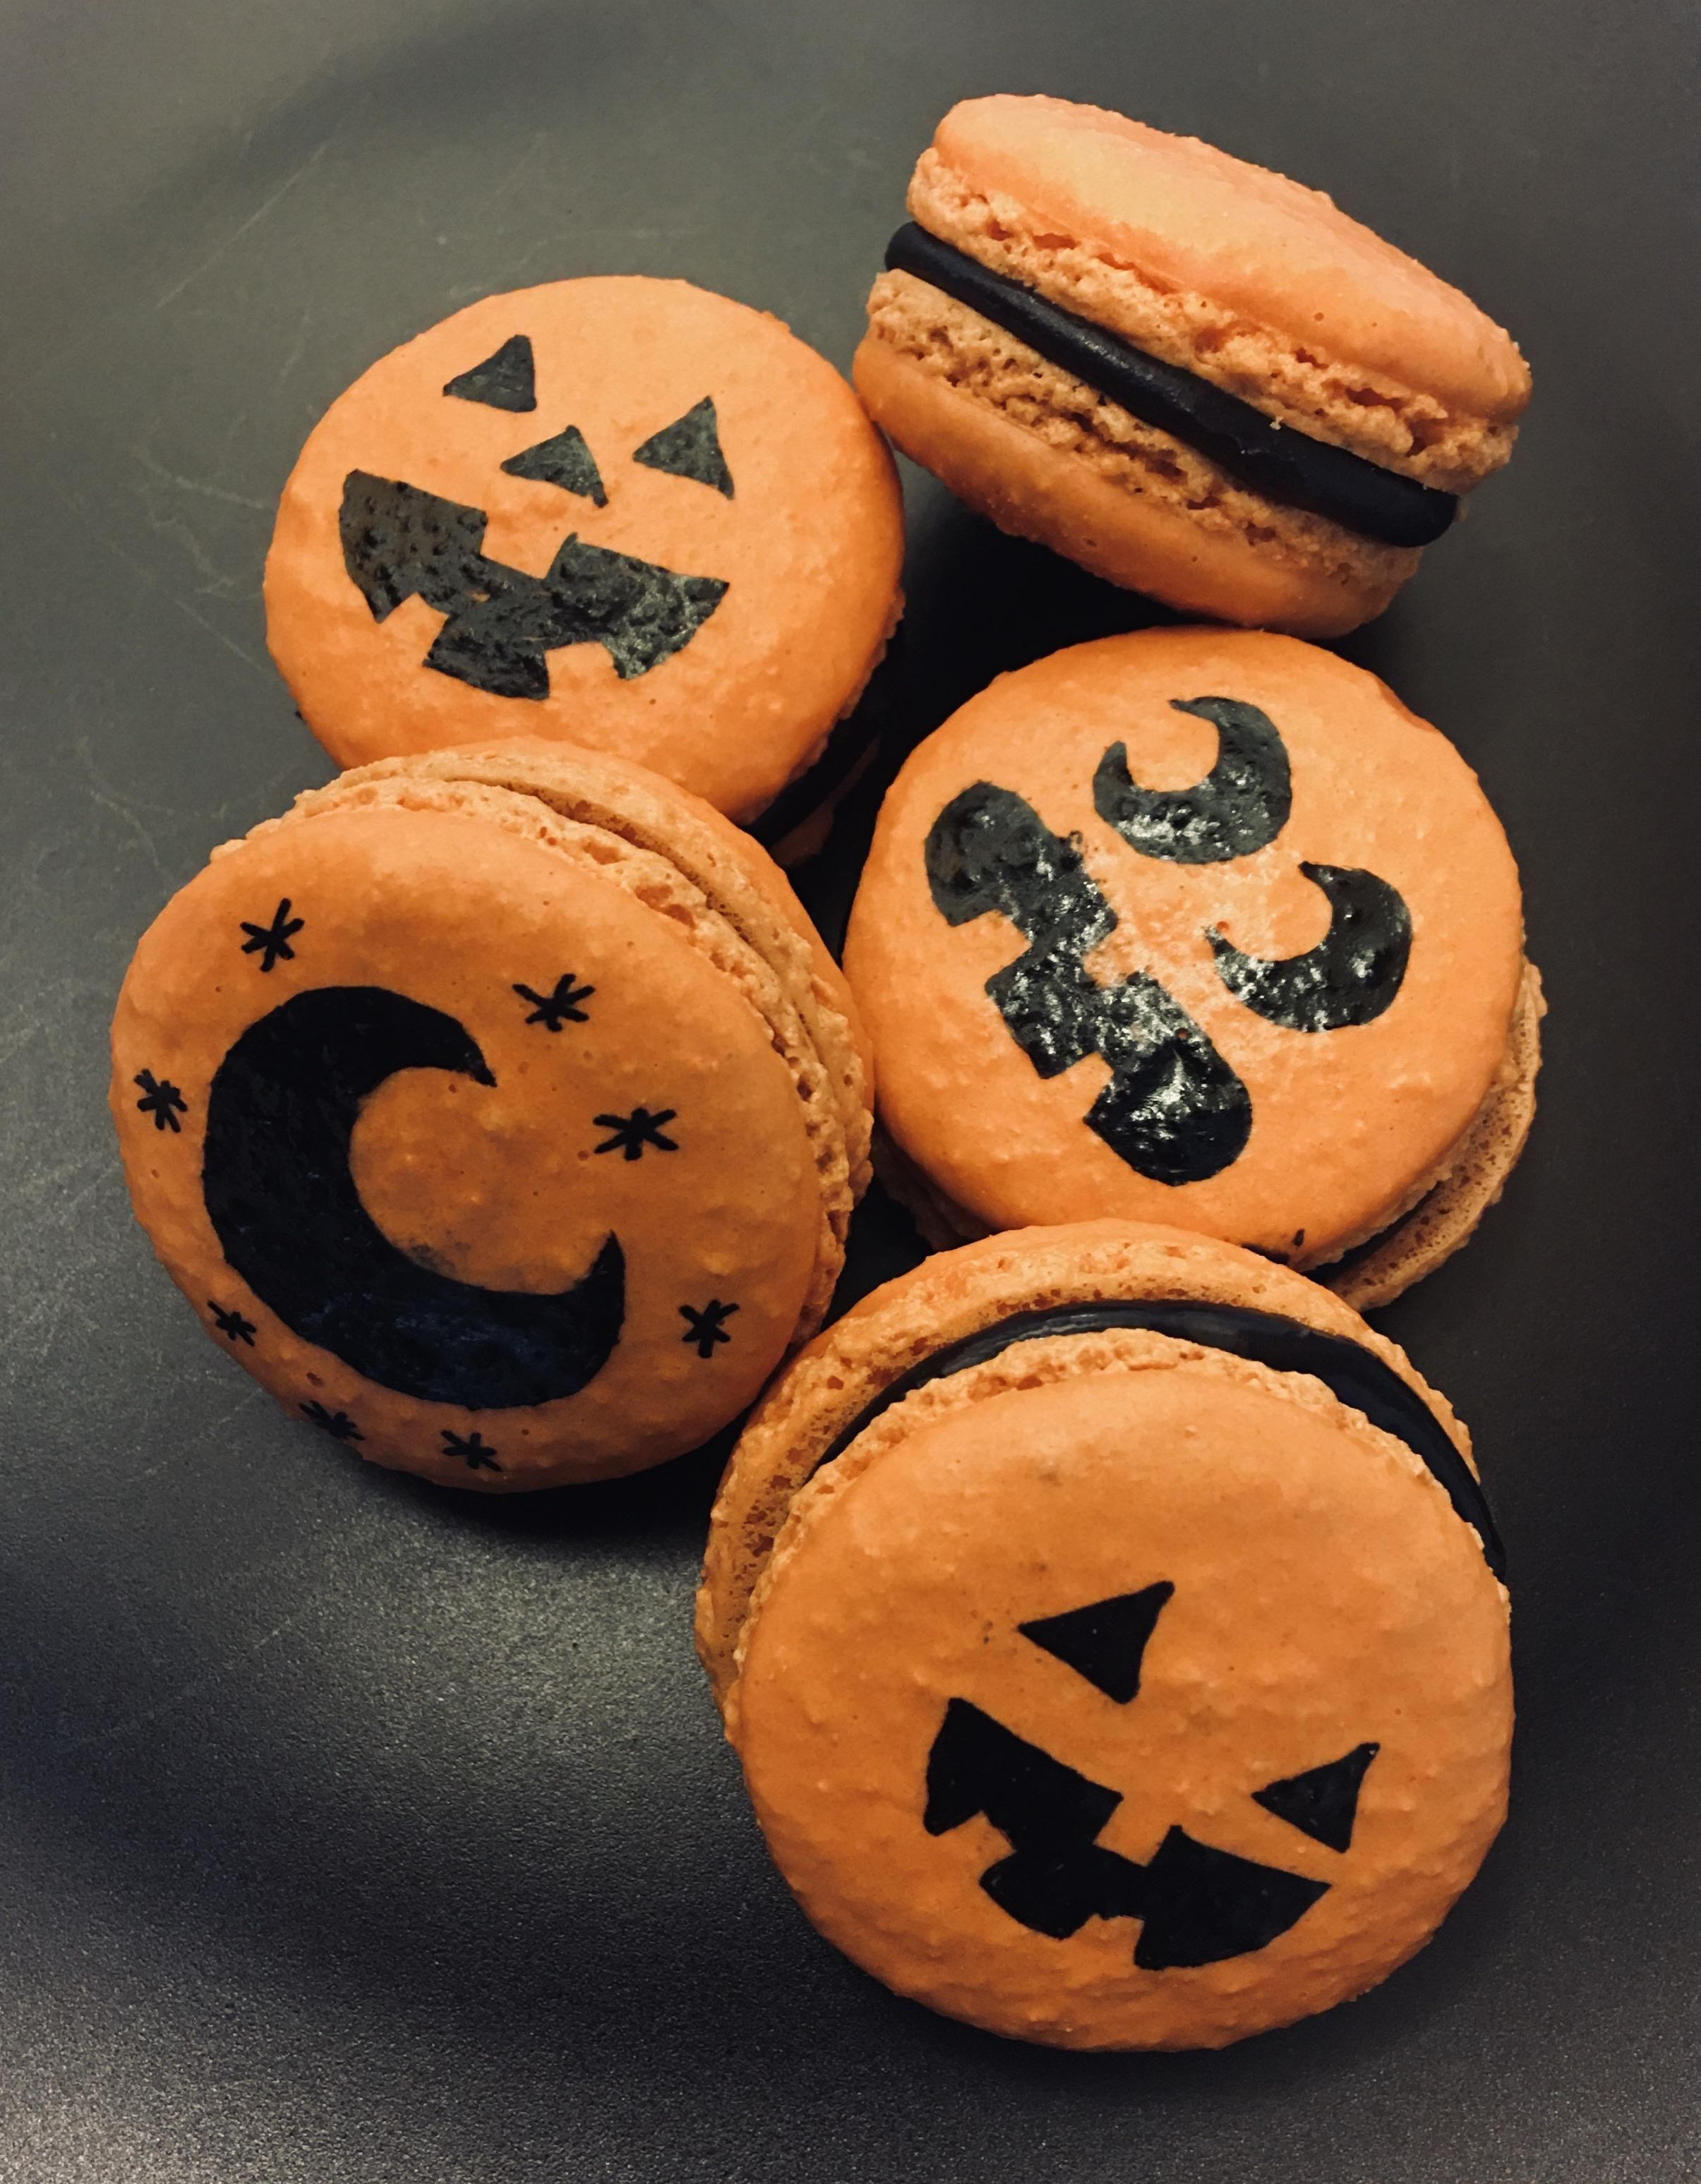 Halloween macarons! Vanilla with black chocolate ganache. #halloweenmacarons Halloween macarons! Vanilla with black chocolate ganache. #halloweenmacarons